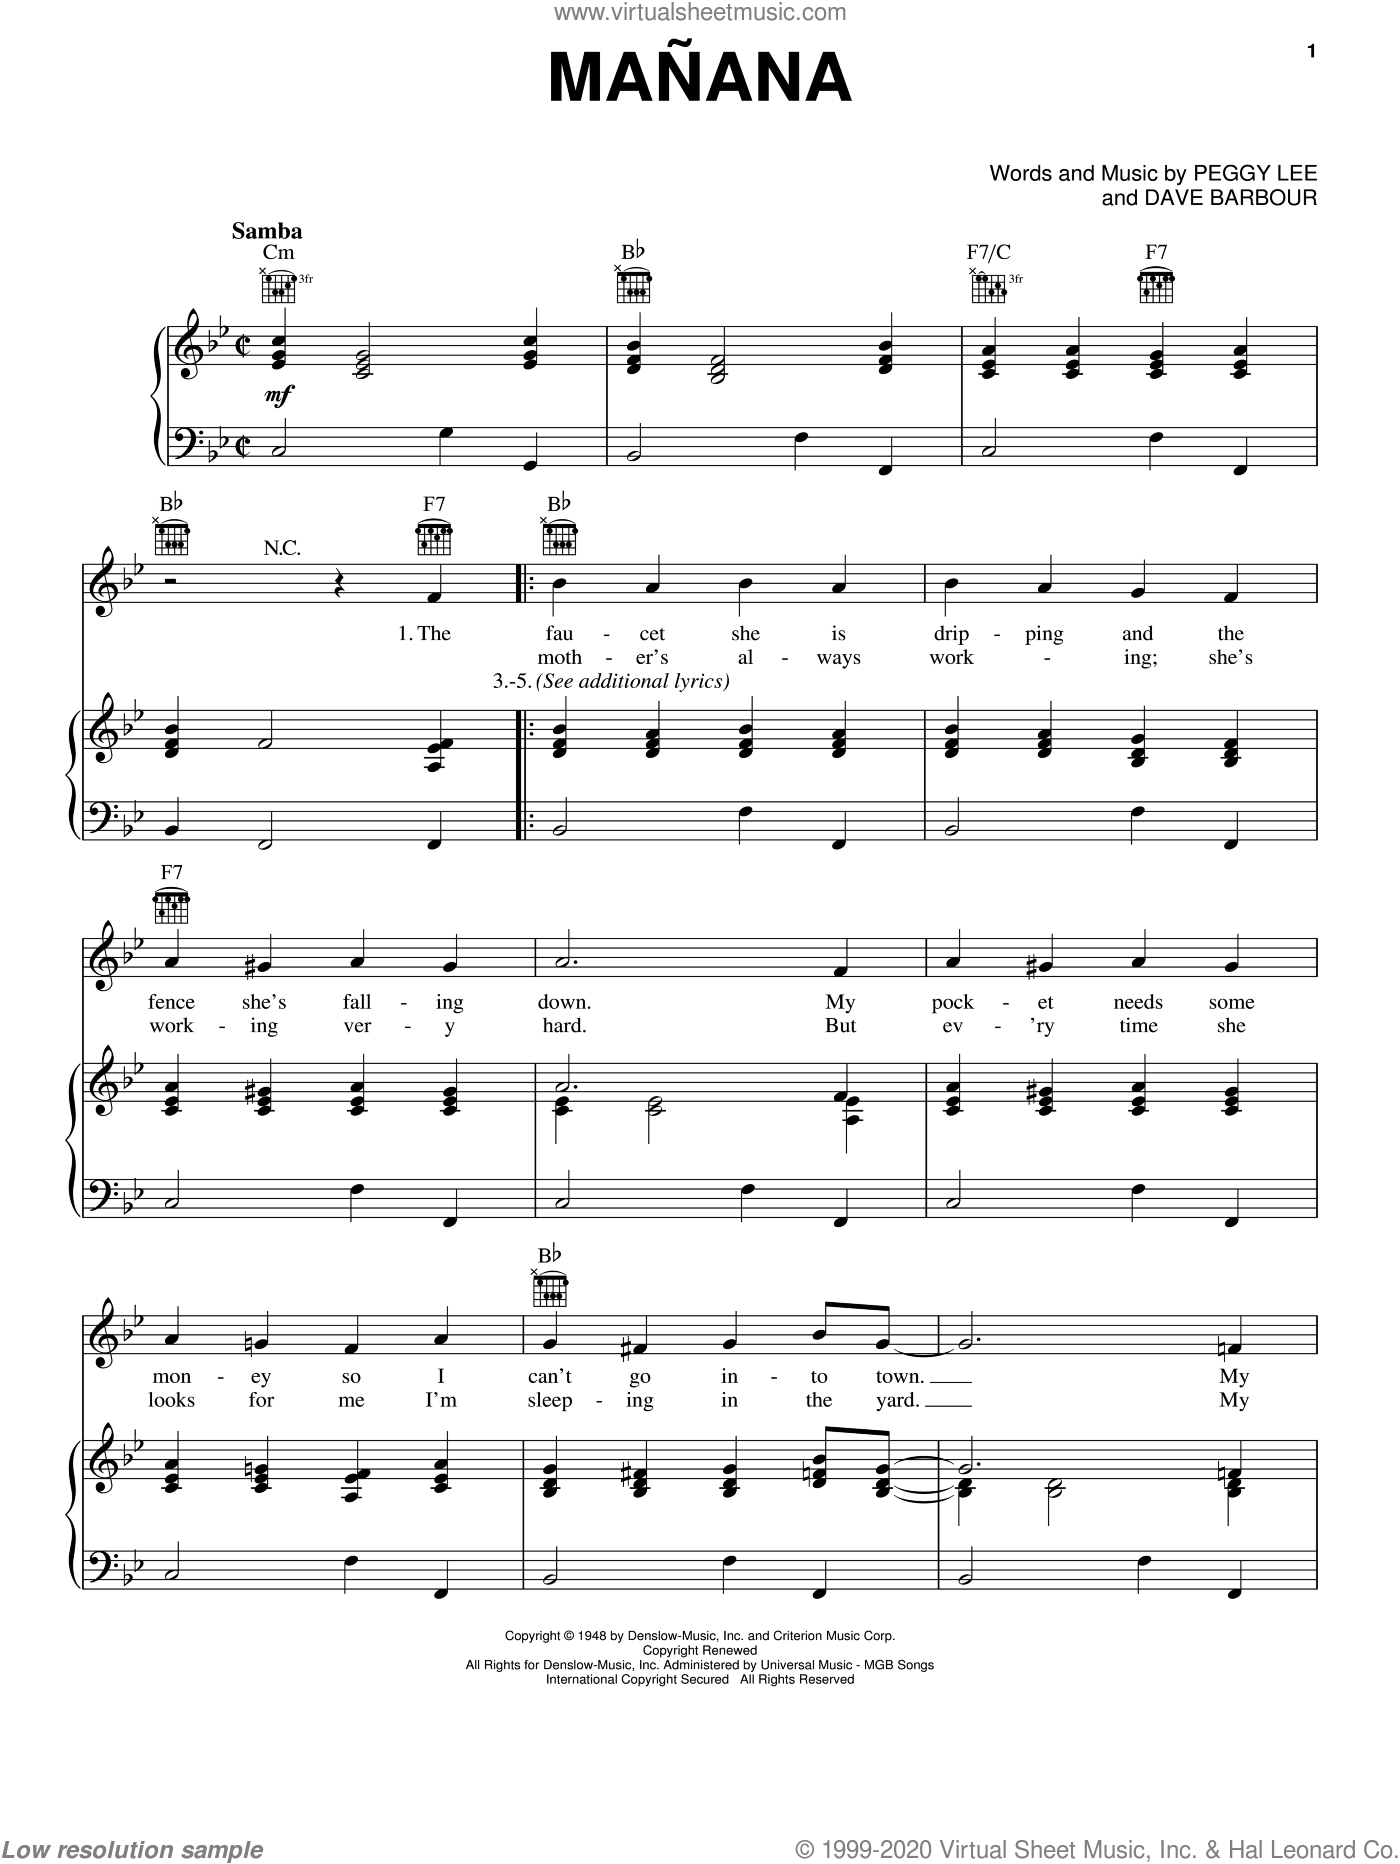 Manana sheet music for voice, piano or guitar by Peggy Lee and Dave Barbour, intermediate skill level